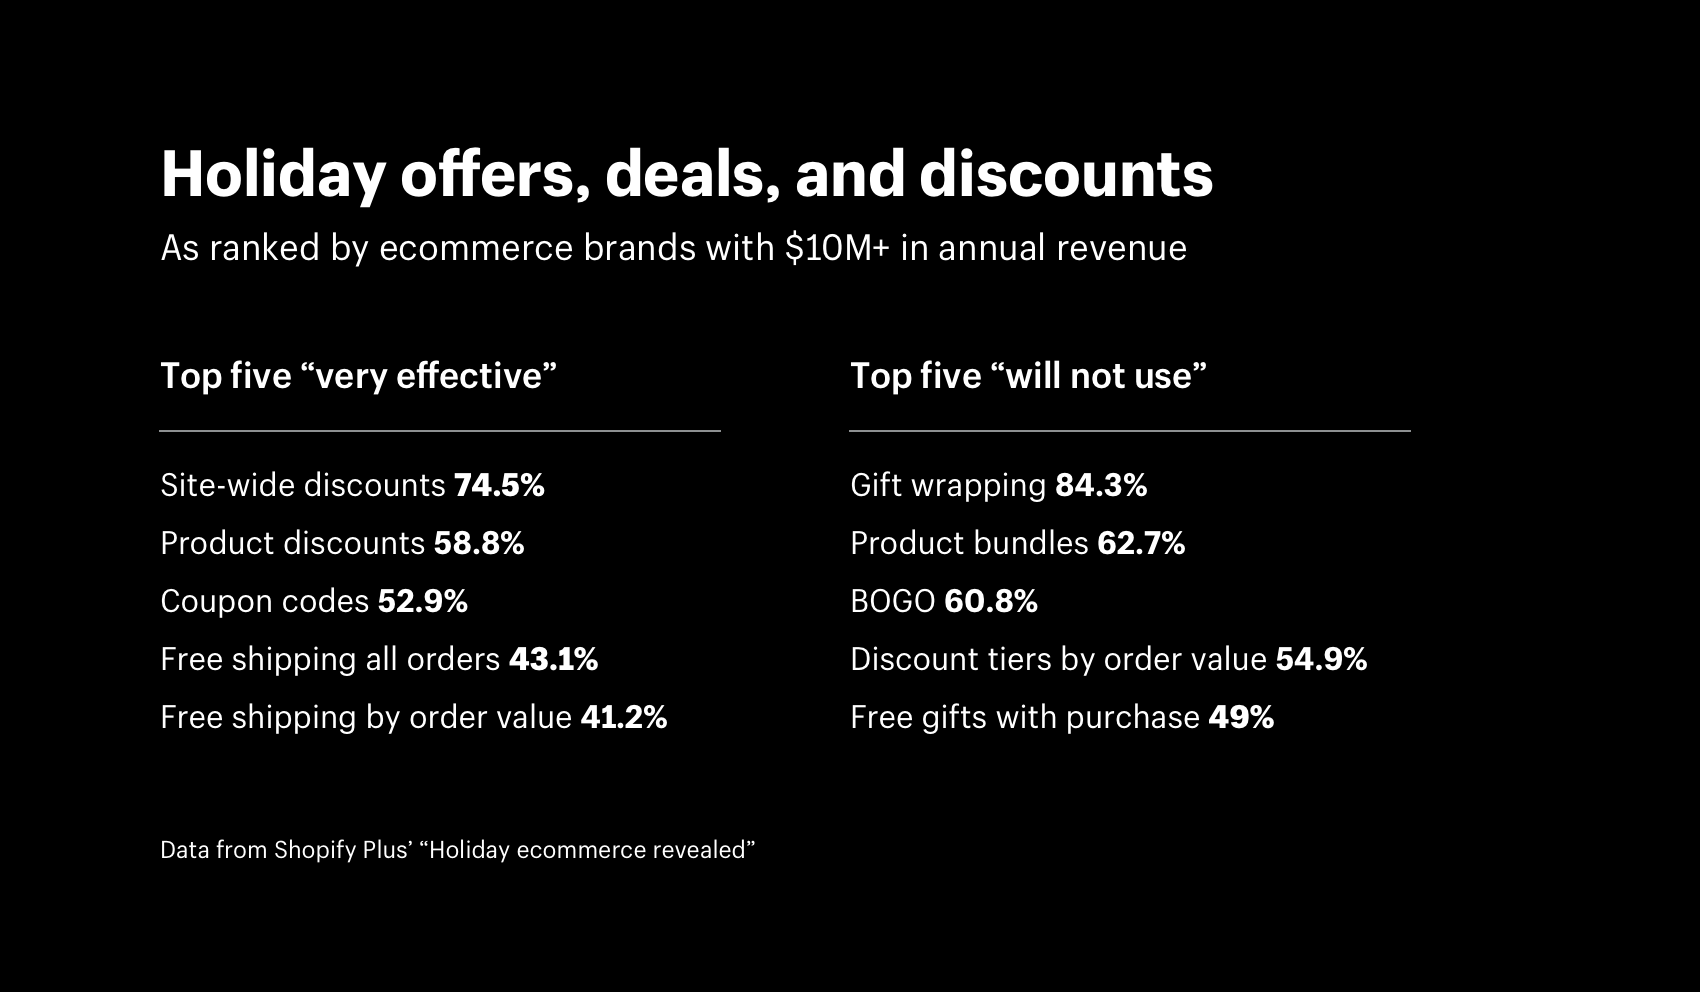 Holiday offers, deals, and discounts ranked by effectiveness